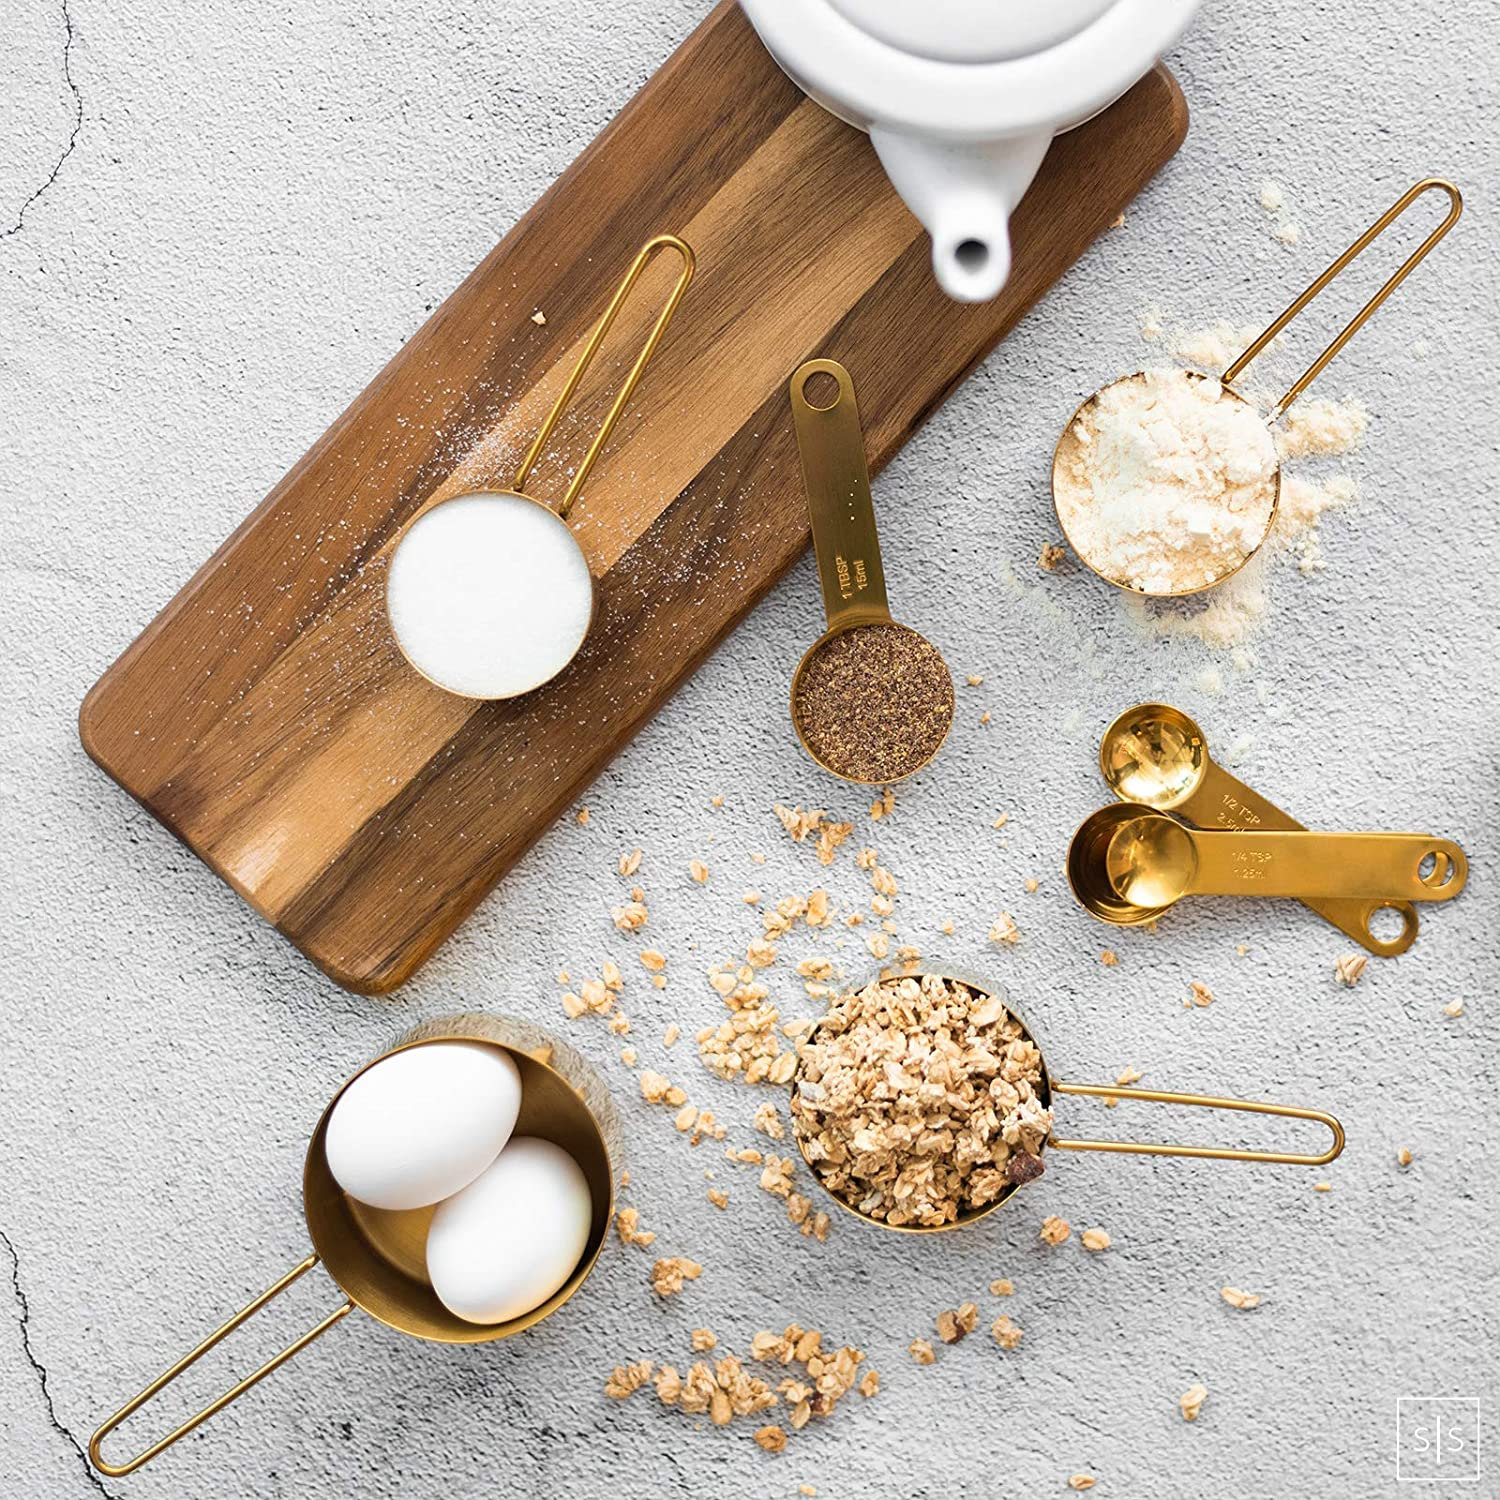 Modern Stainless Steel Measuring Cups and Spoons Set Gold